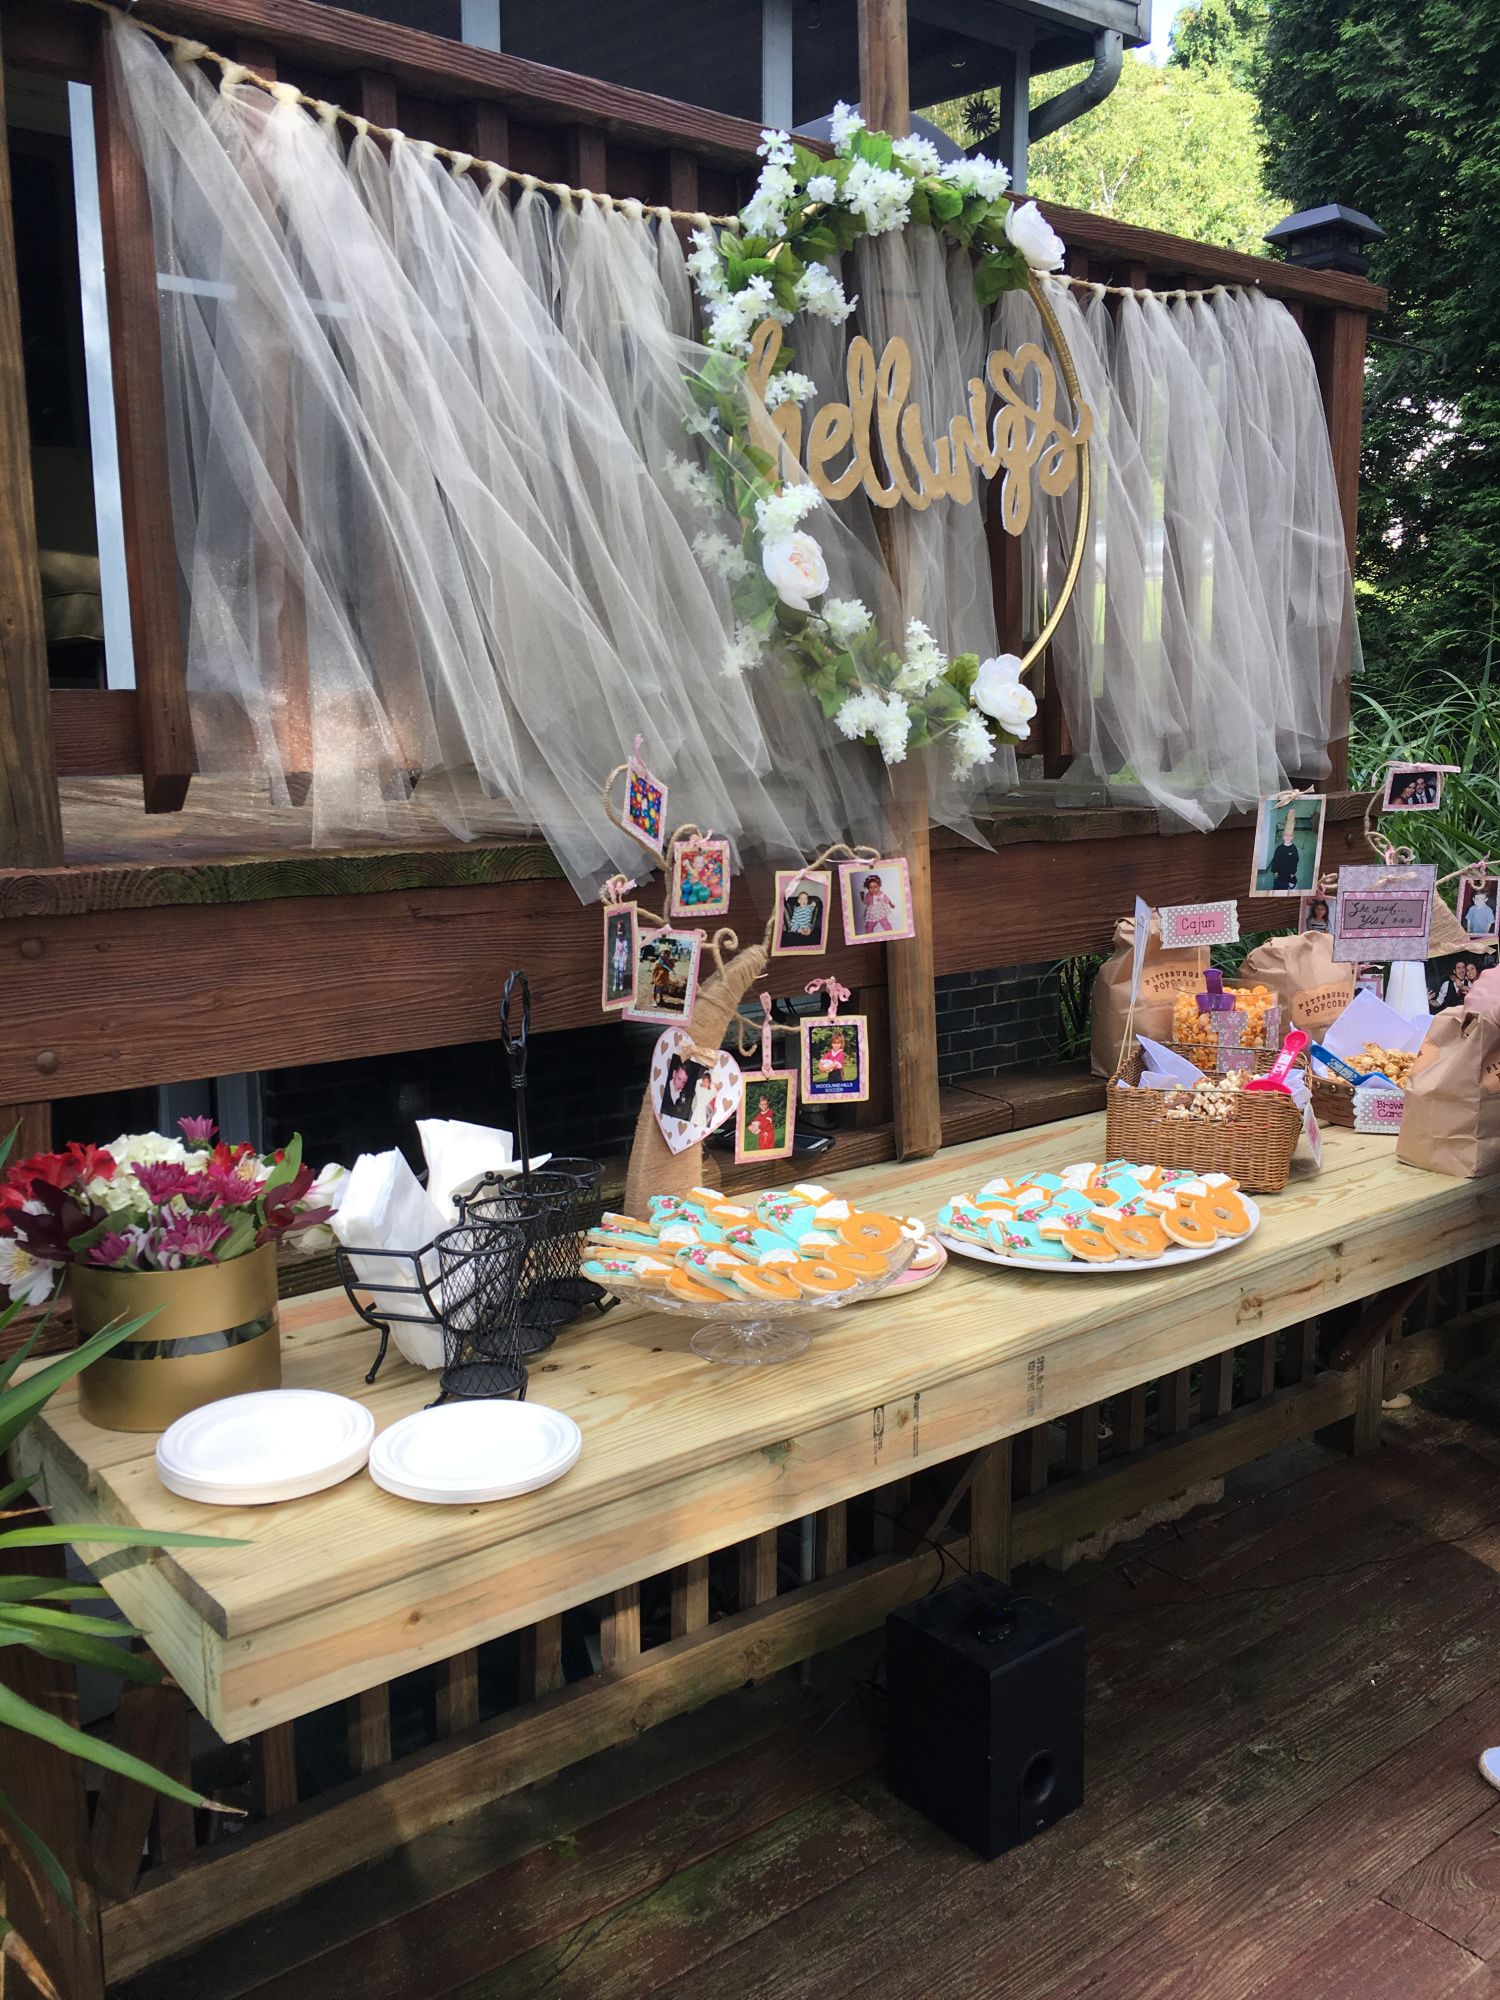 Easy Engagement Party Decorations I Do Bbq Backyard for Backyard Engagement Party Decorations